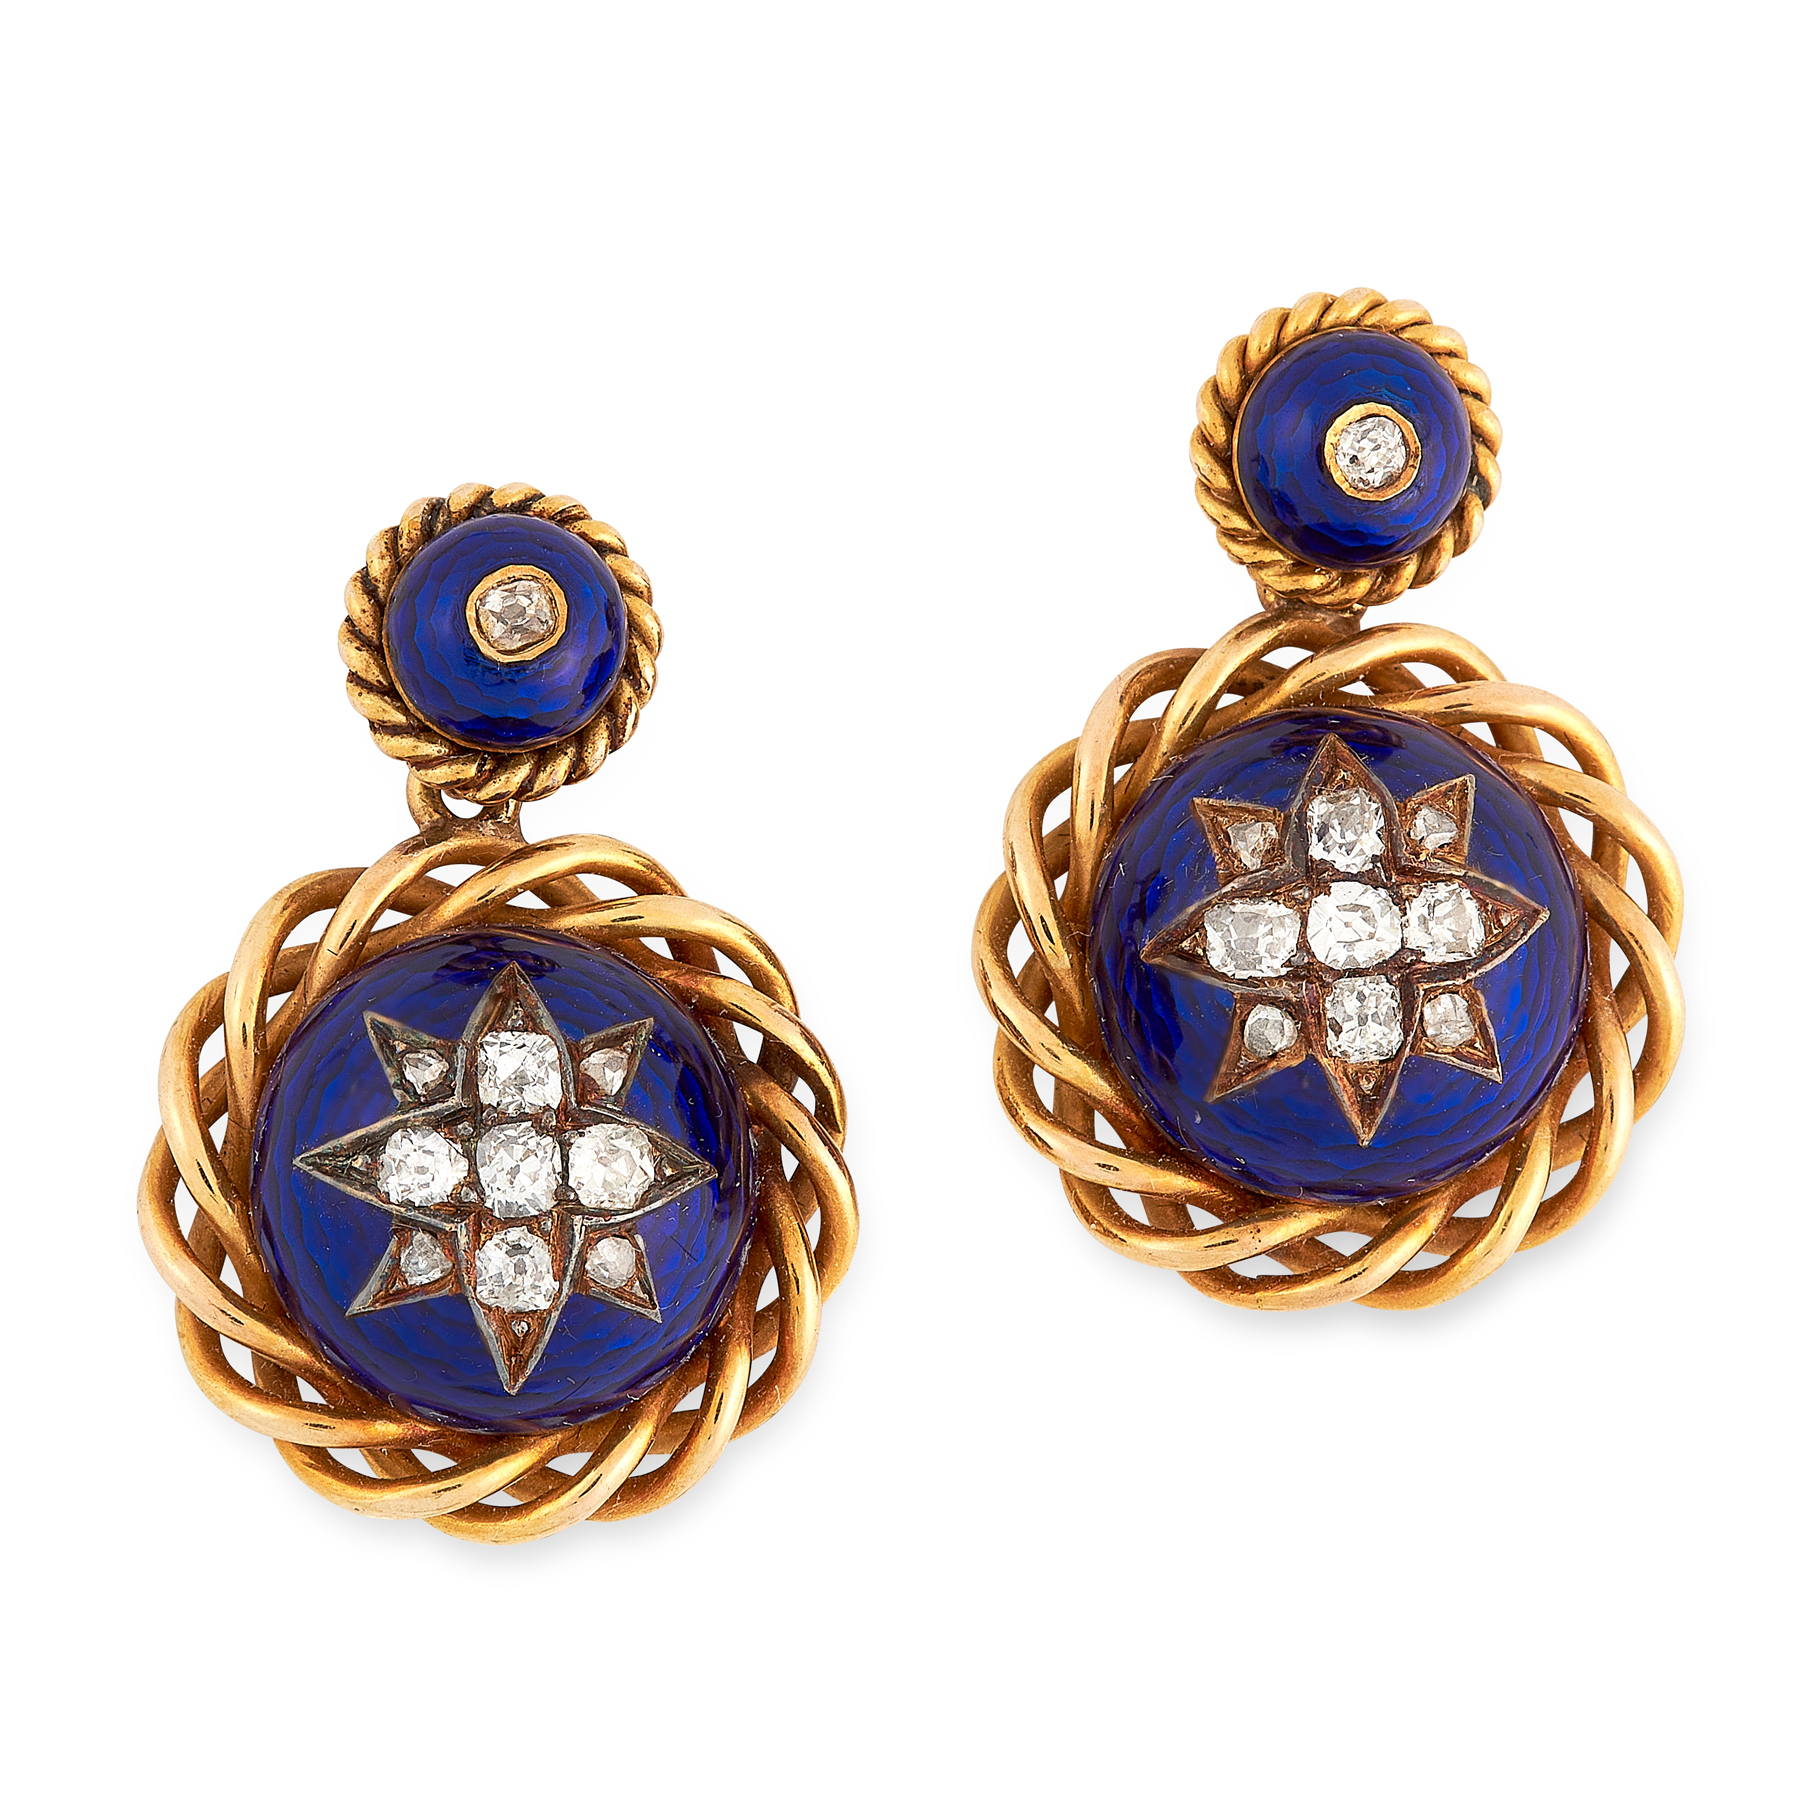 A PAIR OF ANTIQUE DIAMOND AND ENAMEL DROP EARRINGS, 19TH CENTURY in yellow gold, each formed of